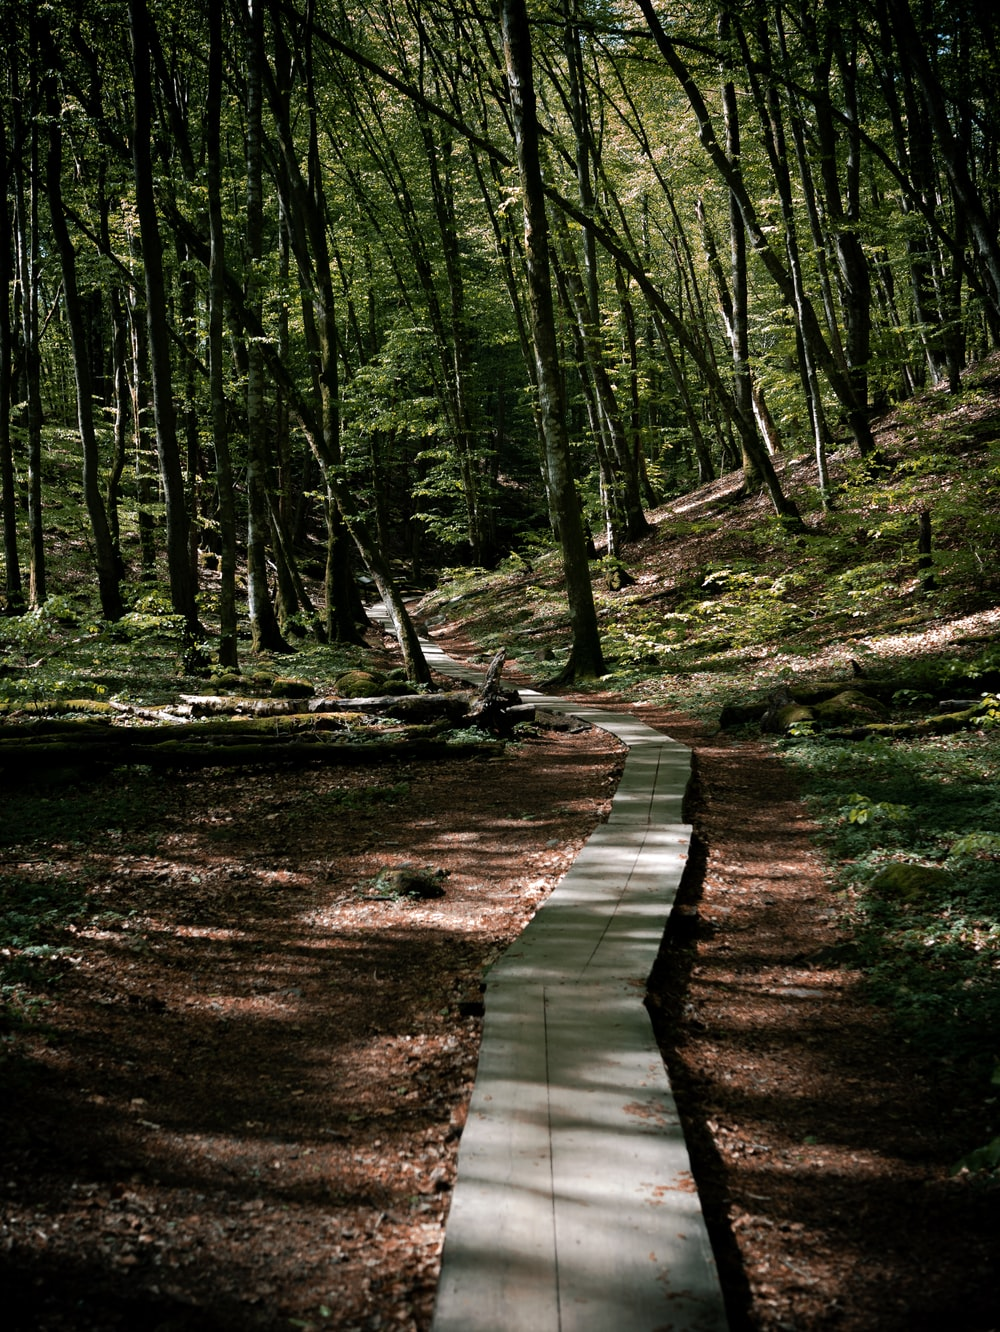 concrete pathway on ground surrounded with trees